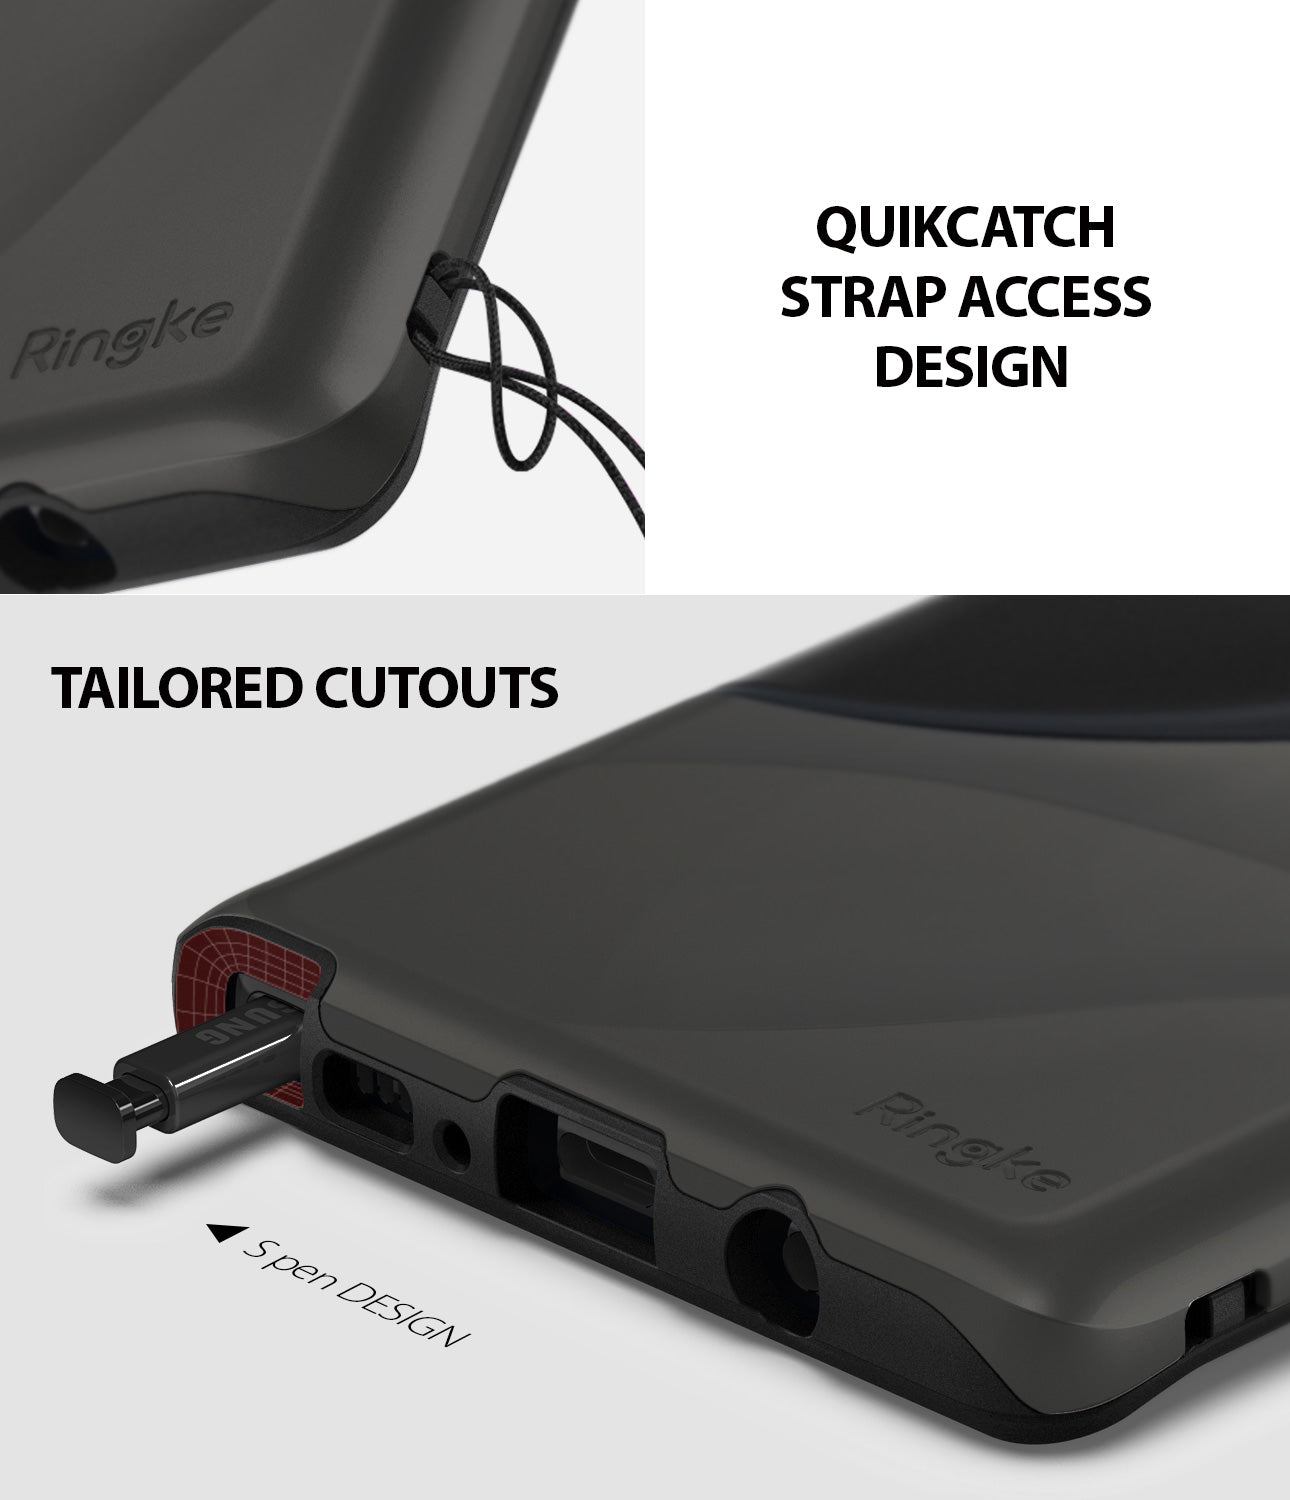 quikcatch strap access design and tailored cutouts